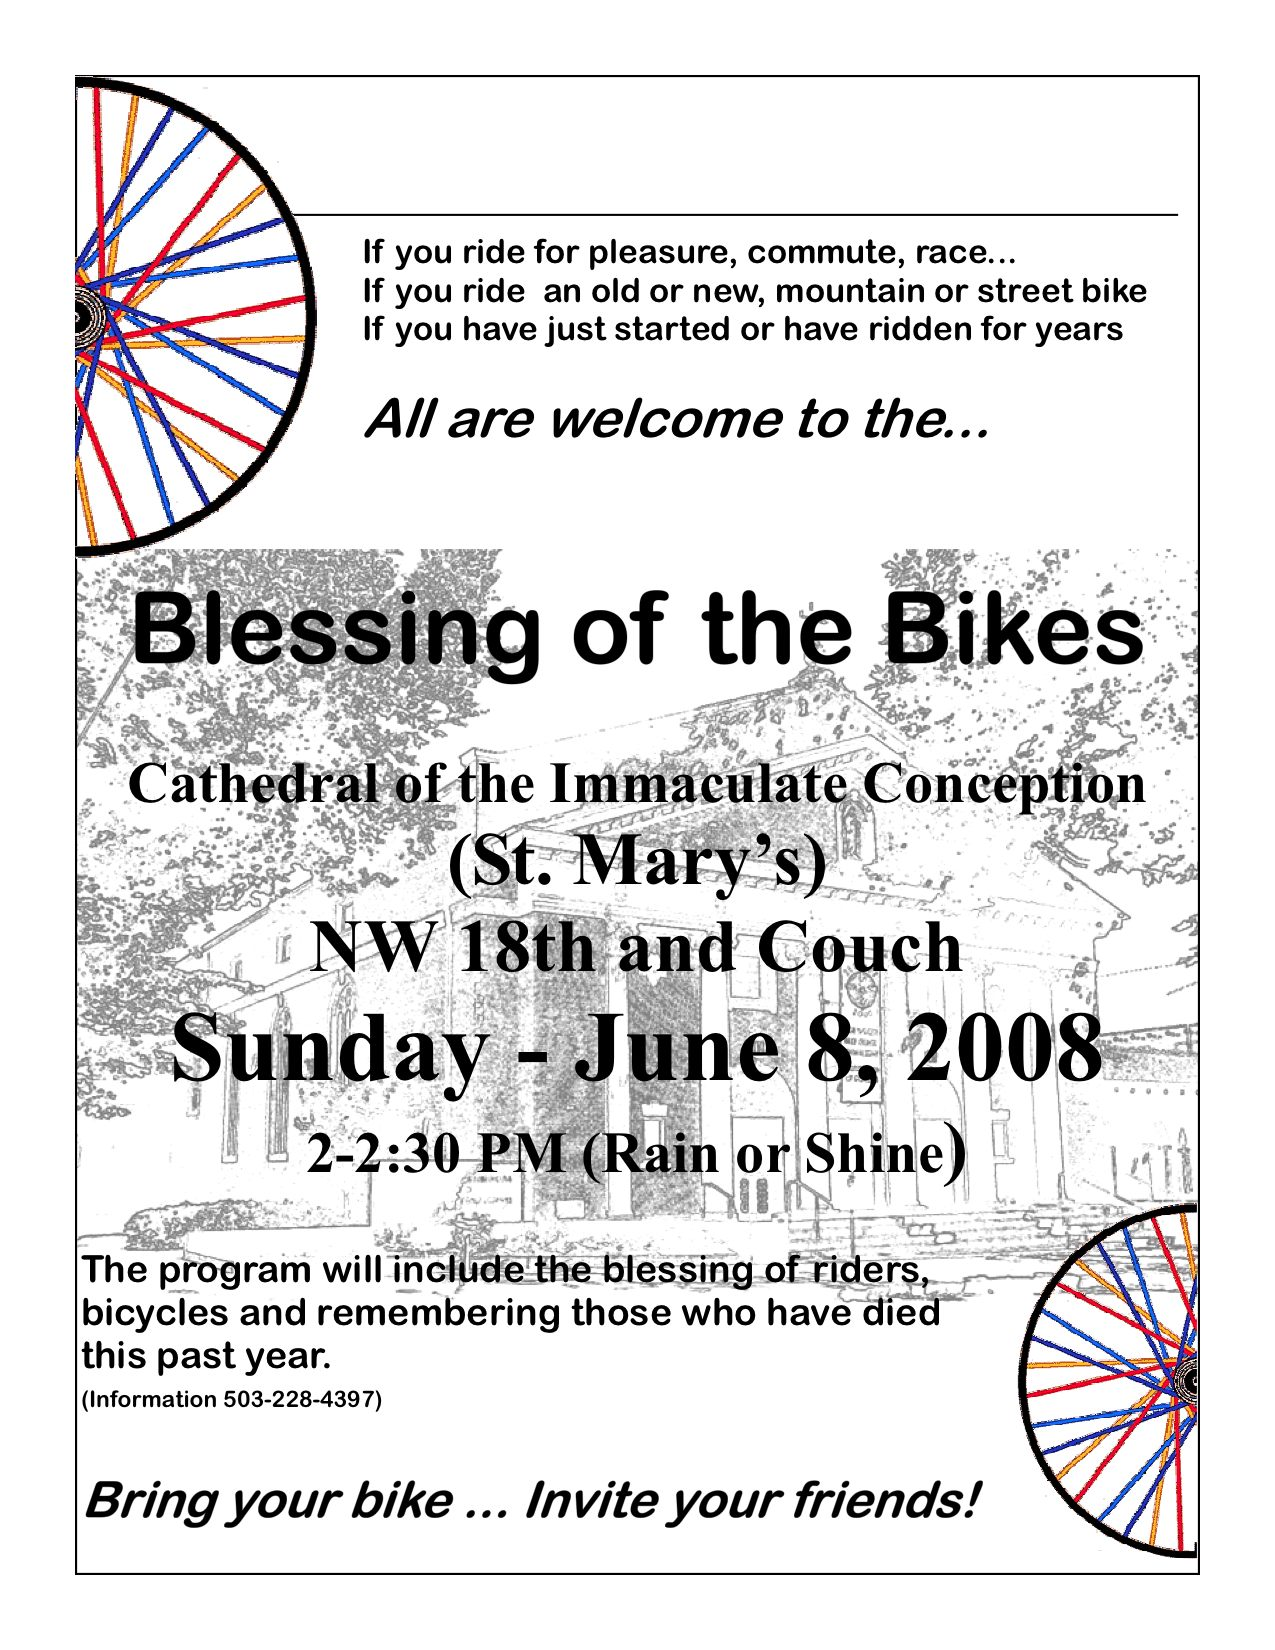 """Archdiocese of Portland will hold a """"Blessing of the Bikes"""